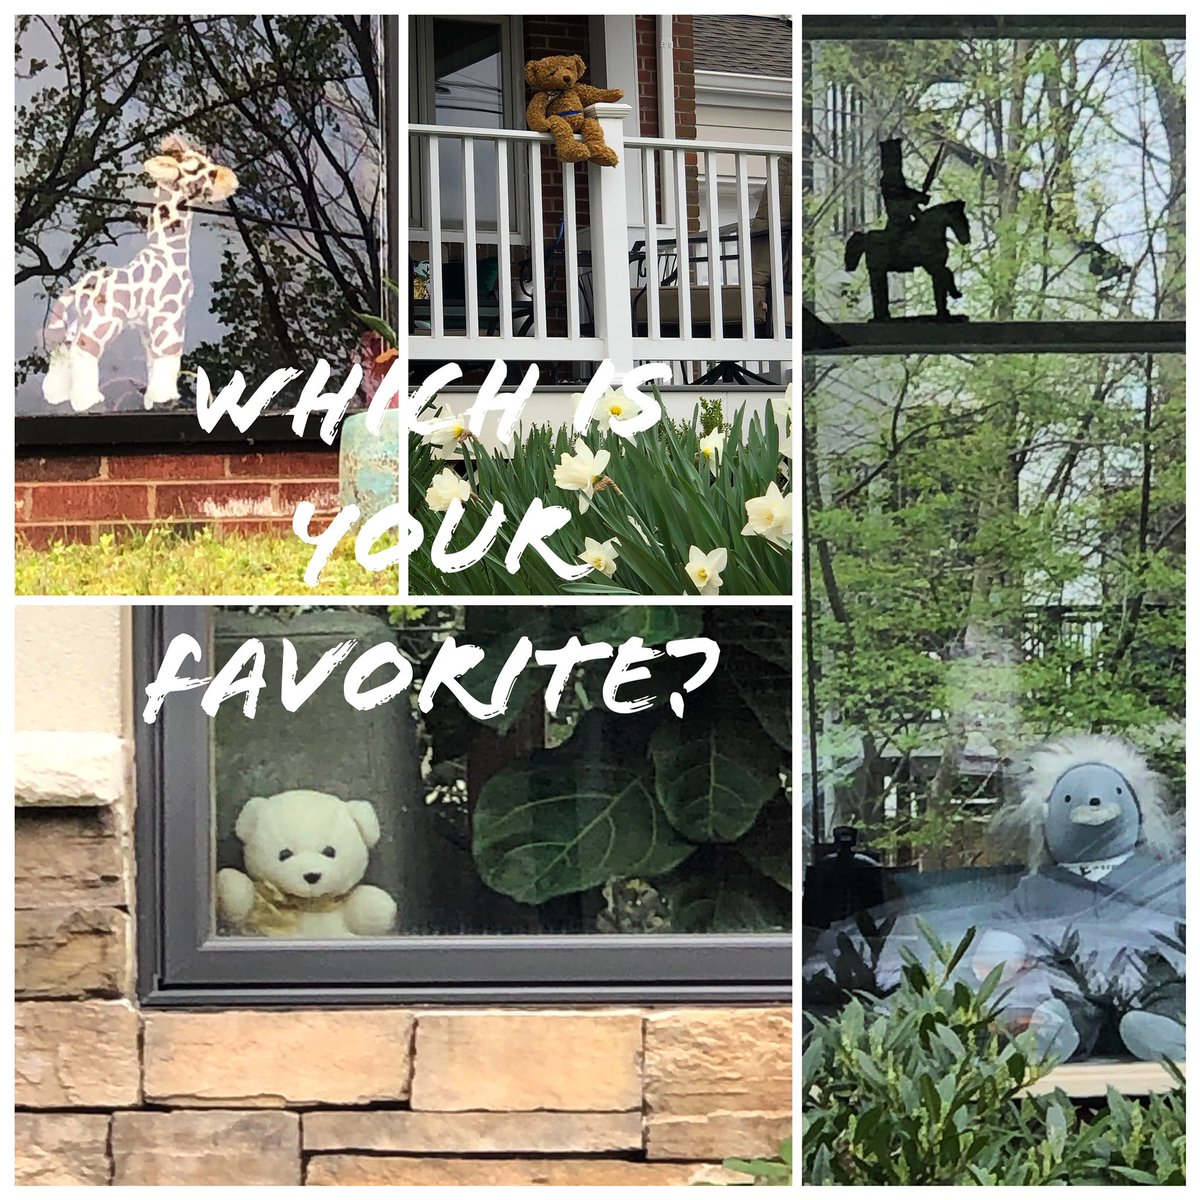 Which one is your favorite?!  comment below!! These were seen during morning walk throughout the neighborhood in windows! Love it.  • • • #jenniferjhammond #selfisolation #quarantine #socialdistancing #walk #morning #neighborhood #earlymorning #stuffedanimals #windowspic.twitter.com/dEEyAyqUoo